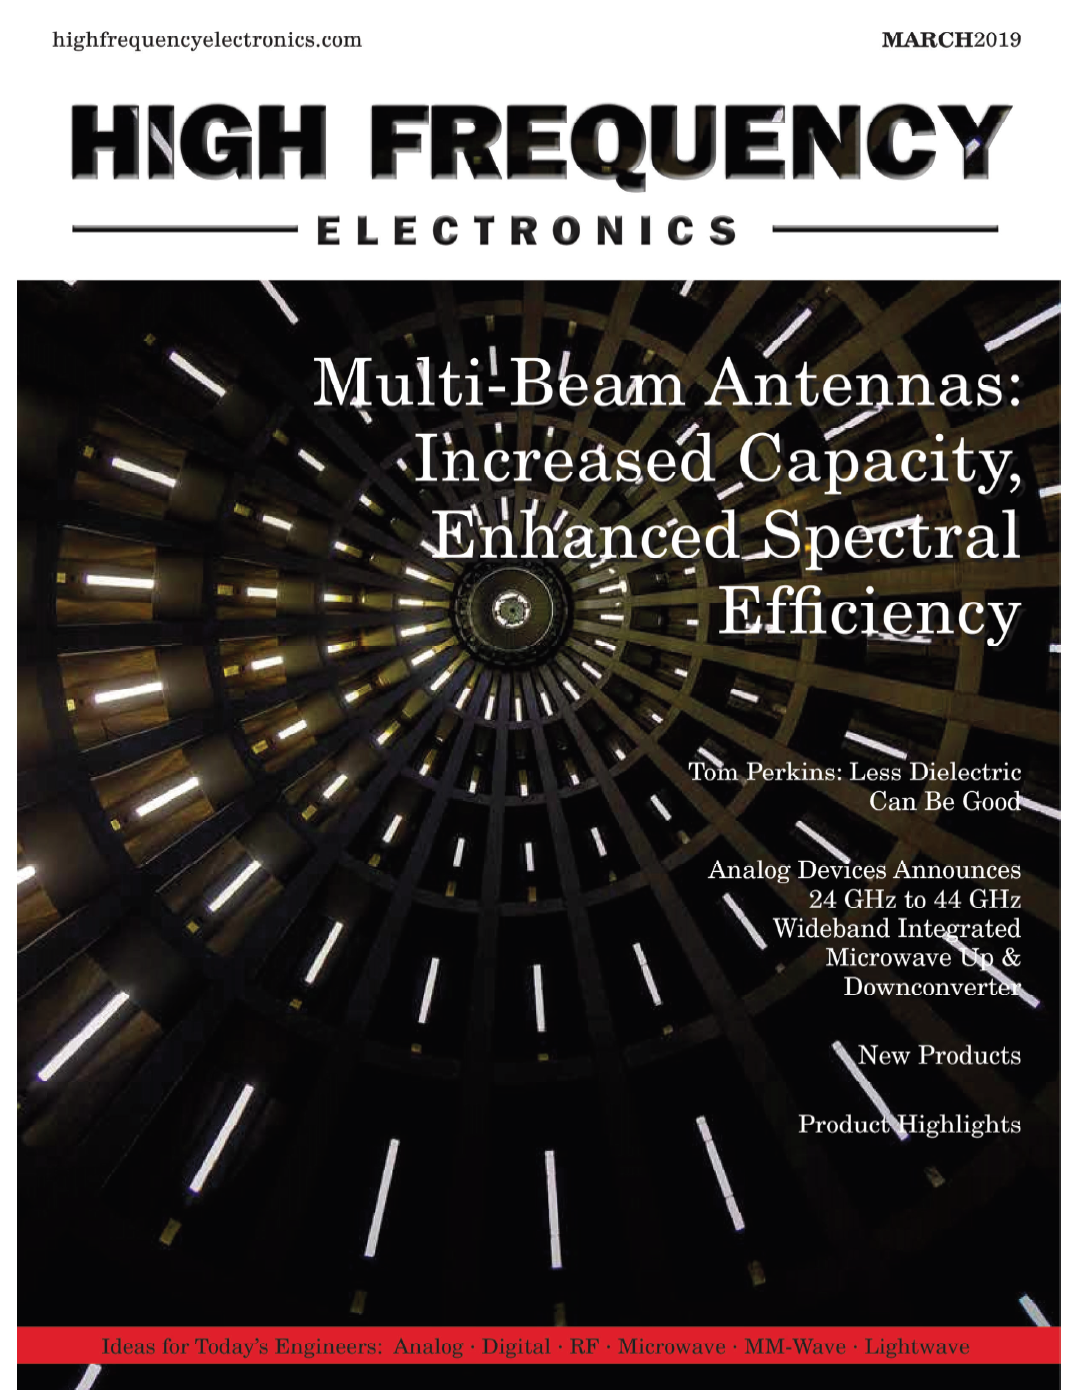 High Frequency Electronics: Multibeam Antennas Cover March 2019